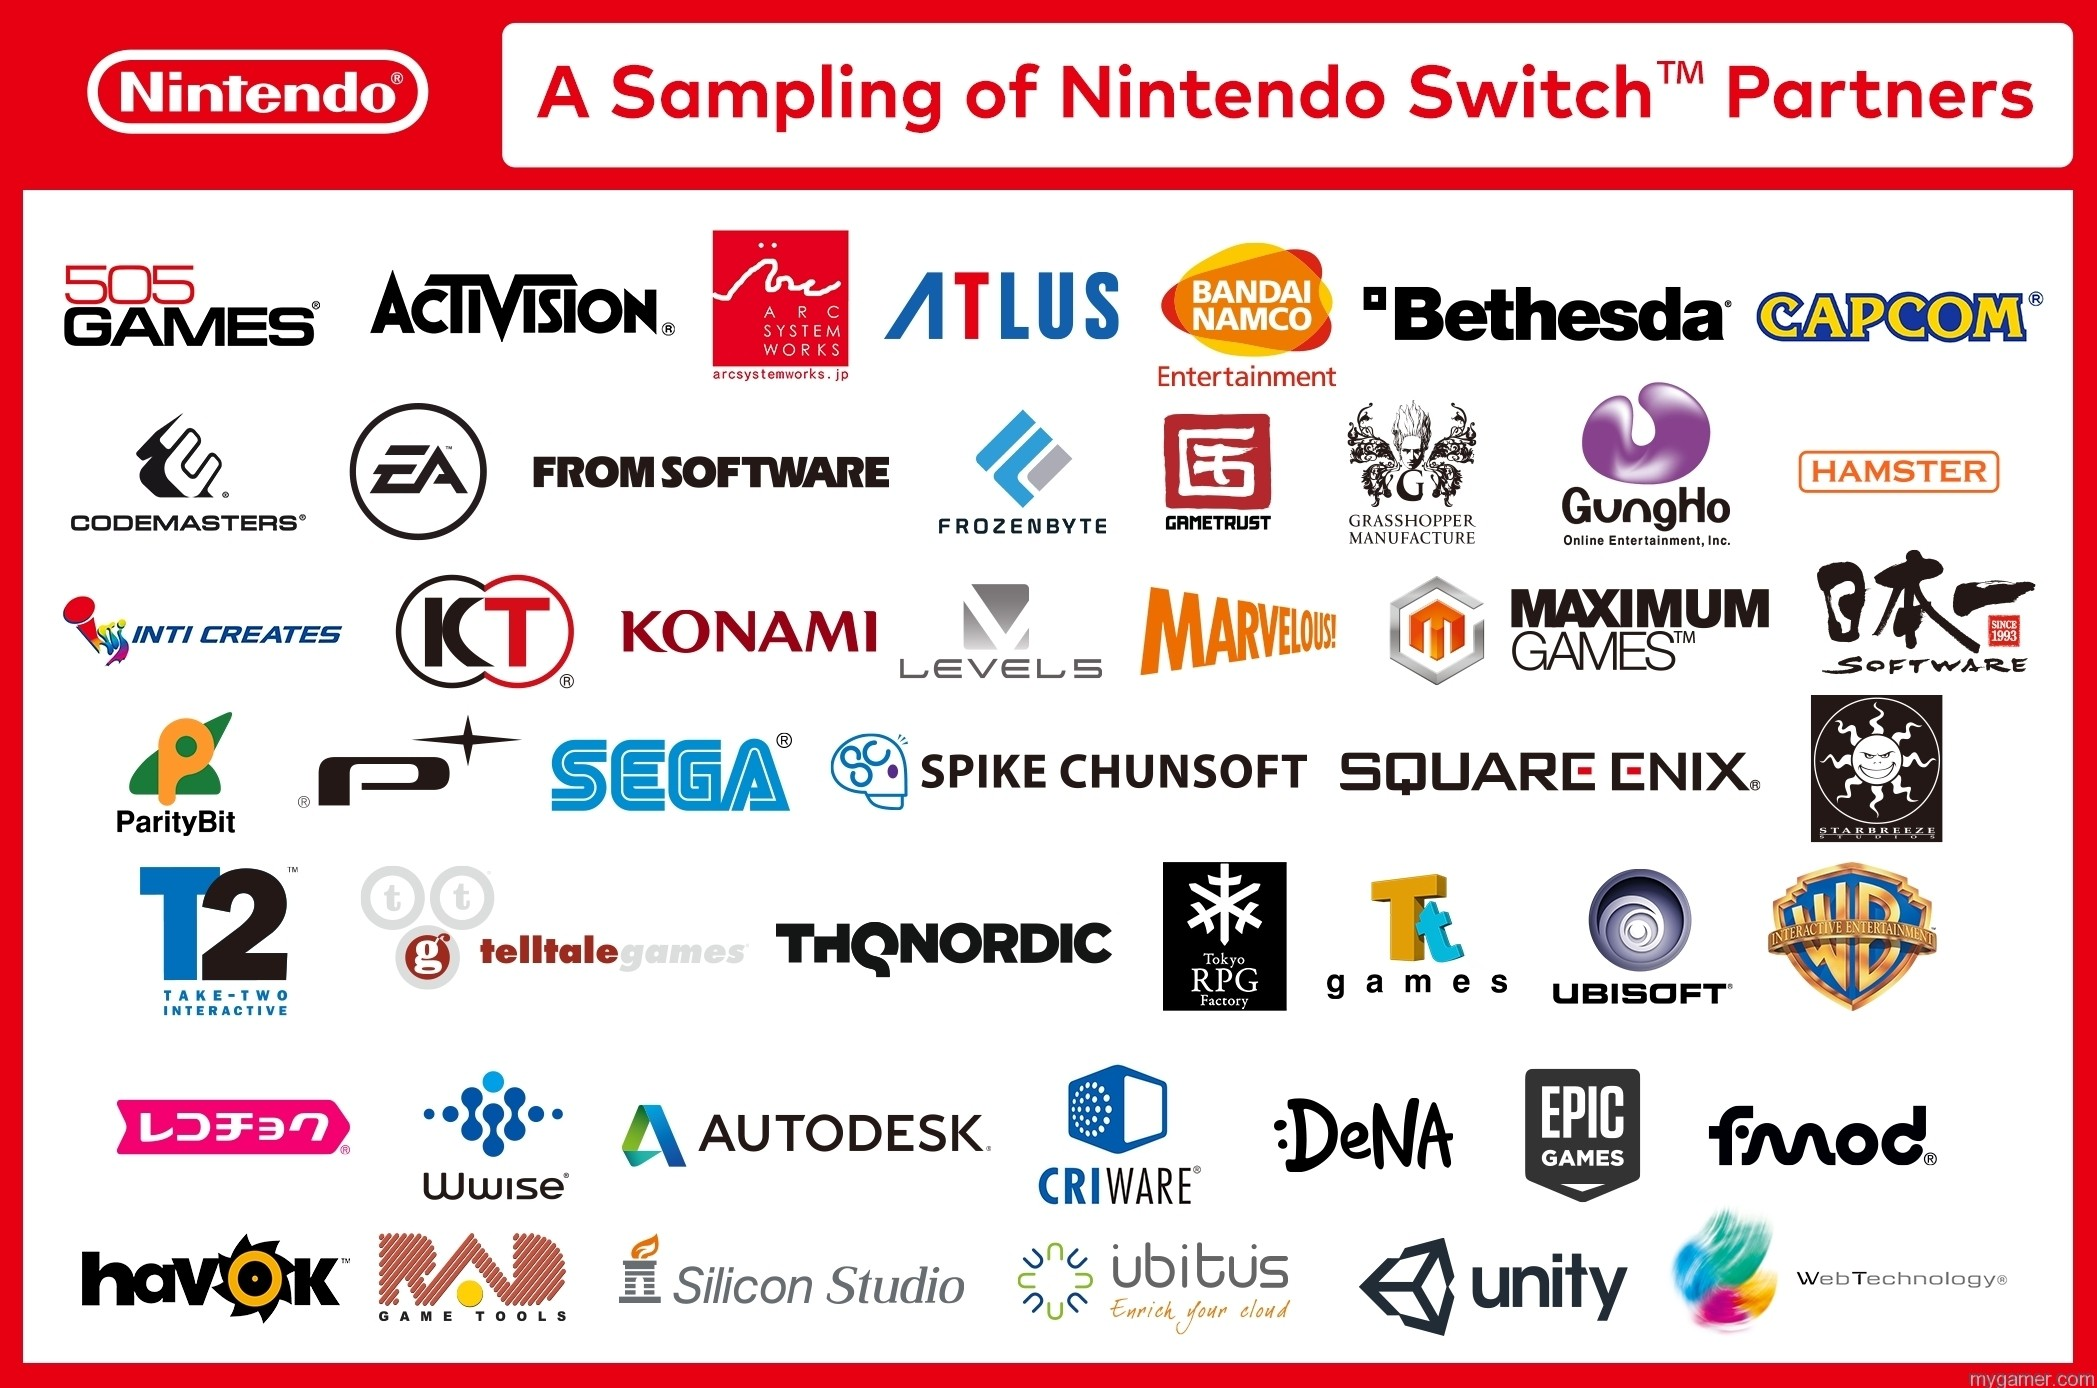 nx-switch-3rd-party-companies Nintendo NX is Nintendo Switch Nintendo NX is Nintendo Switch NX Switch 3rd Party Companies